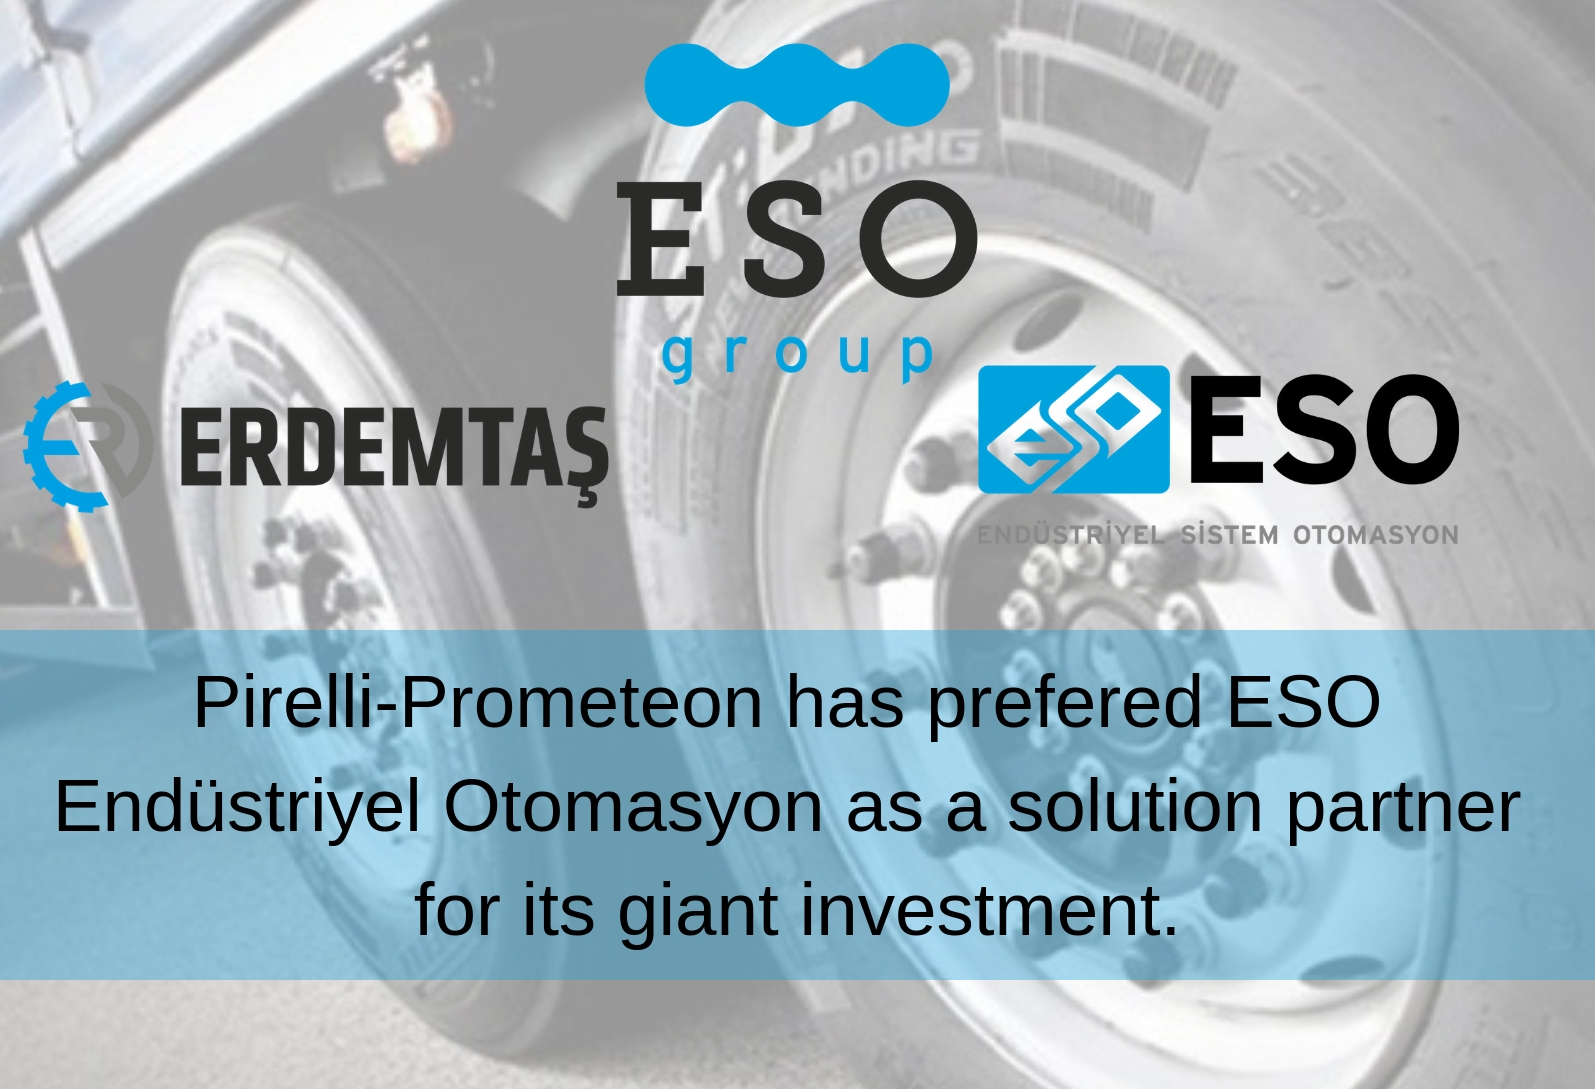 ESO Endüstriyel Otomasyon Became The Solution Partner of Pirelli